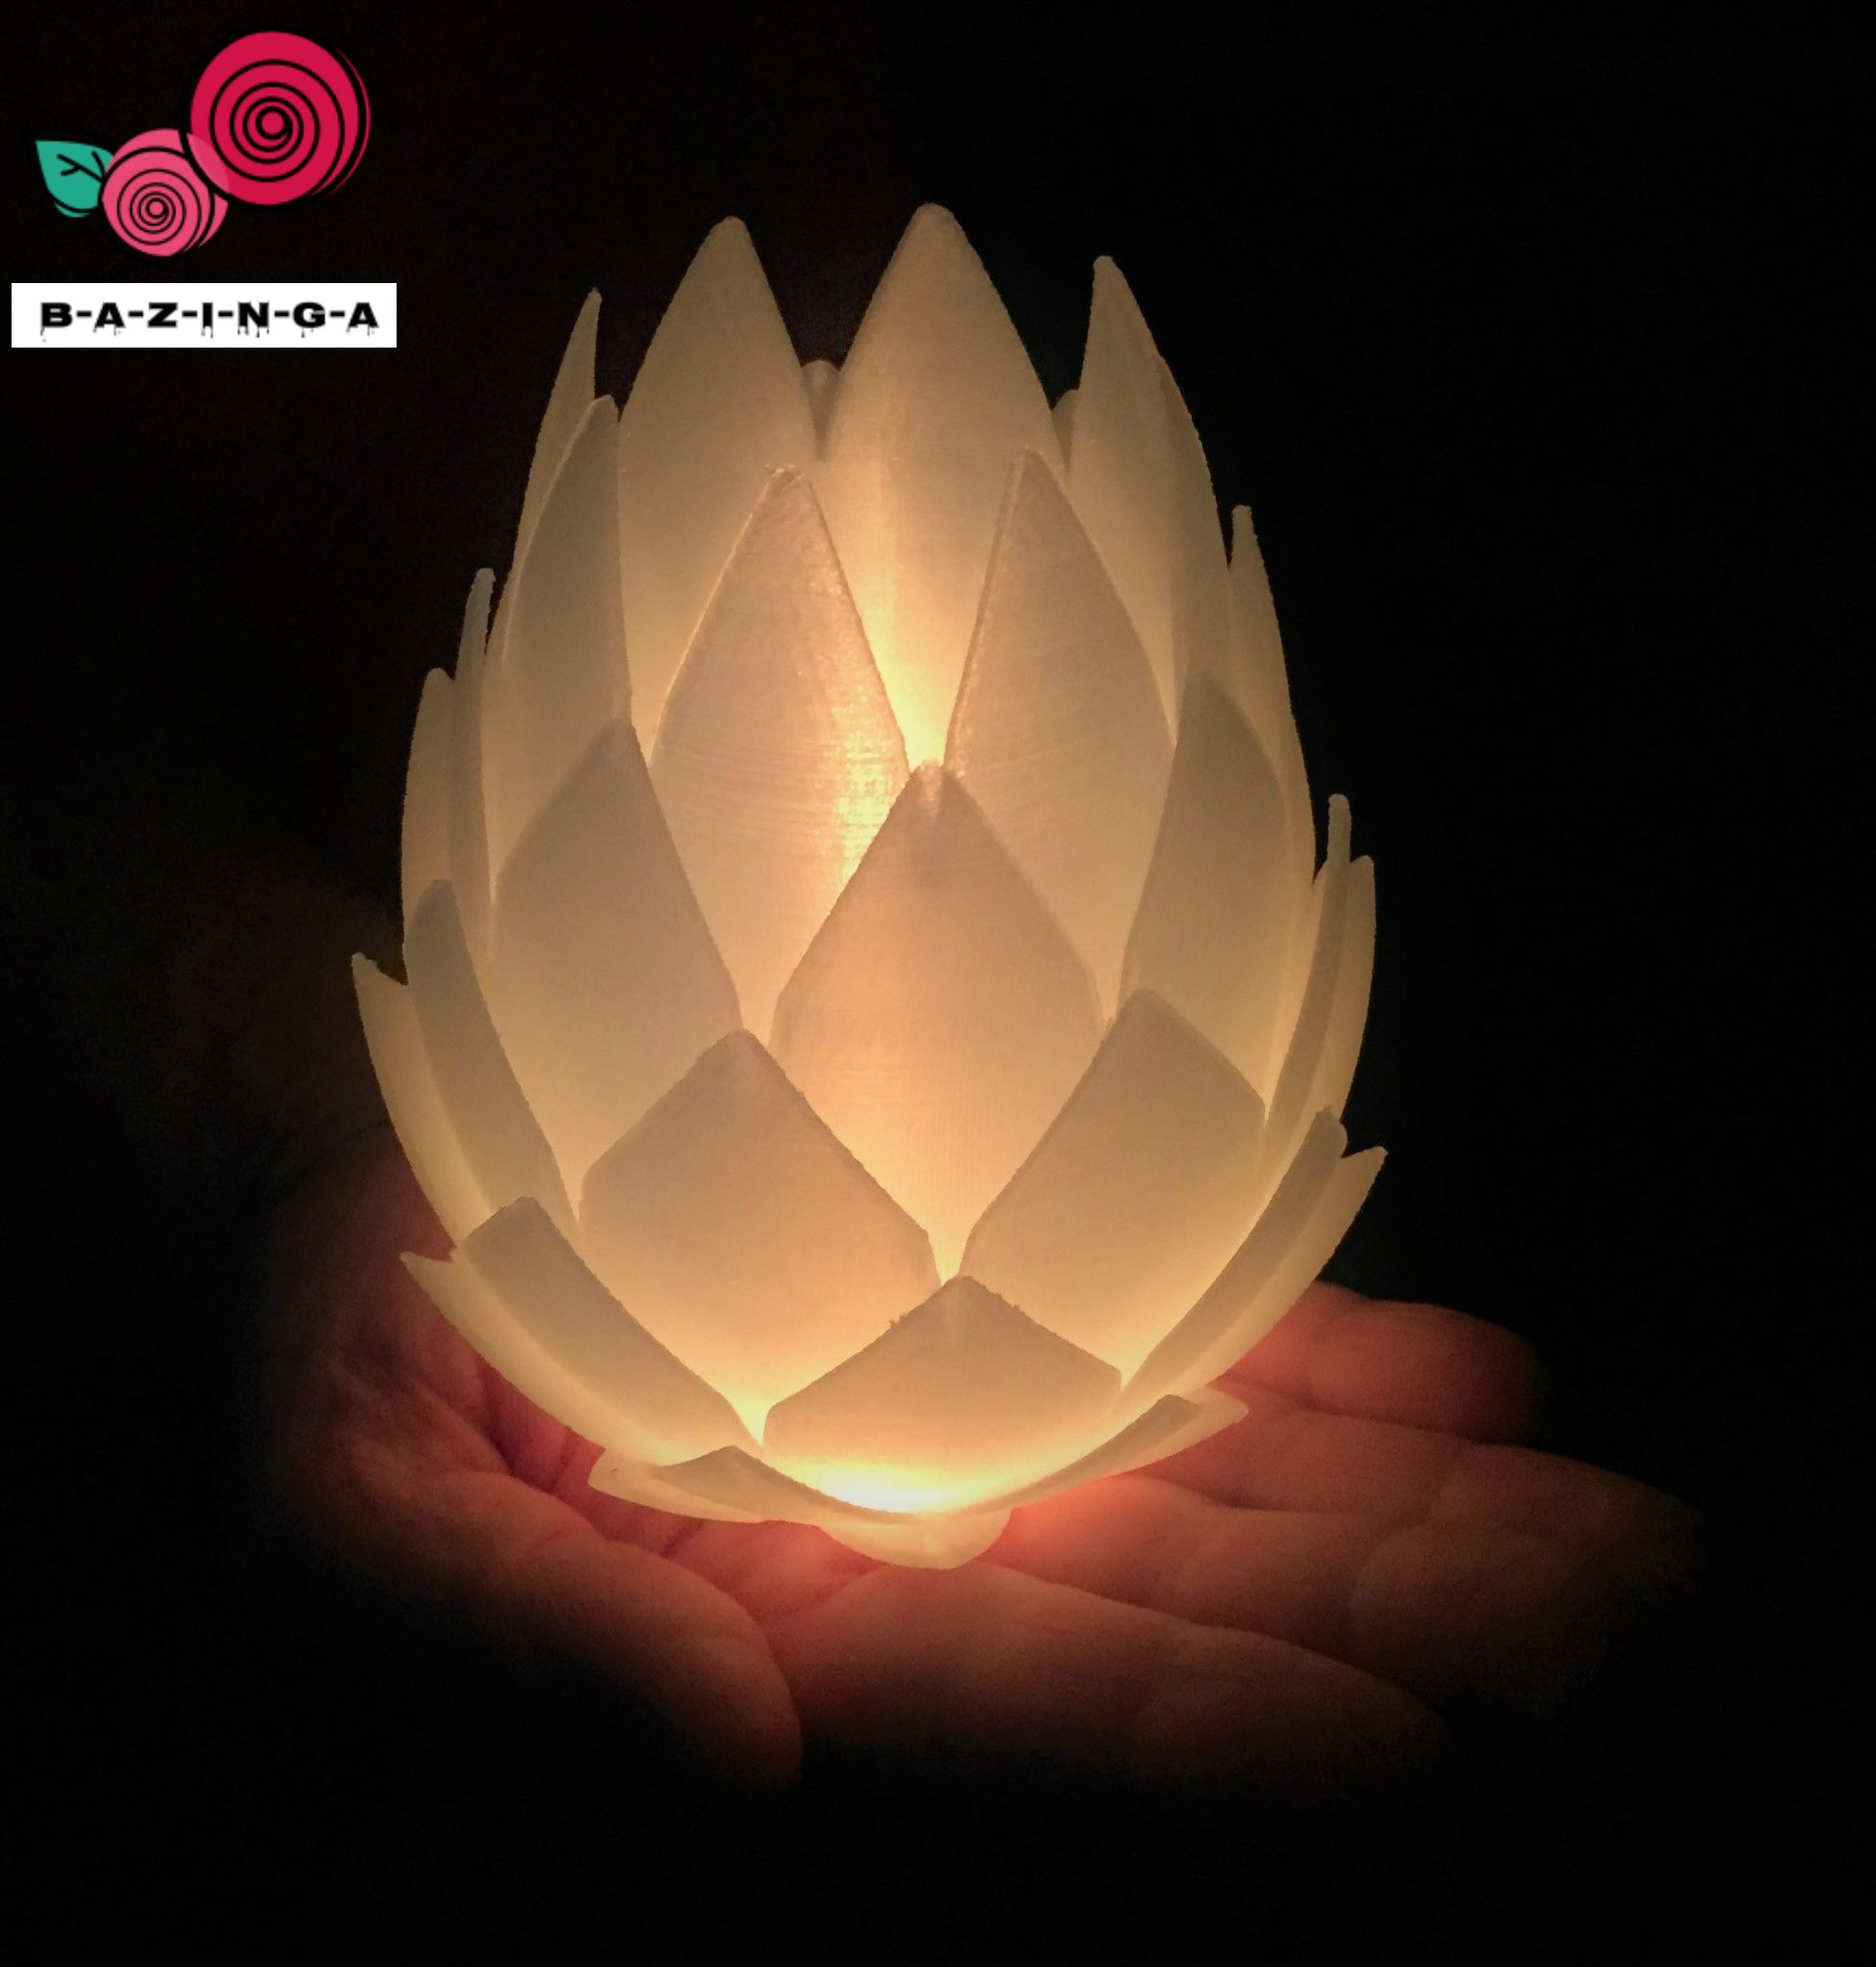 Tealight 3d Model Lamparas Artesanales Lampara Diy Impresion 3d